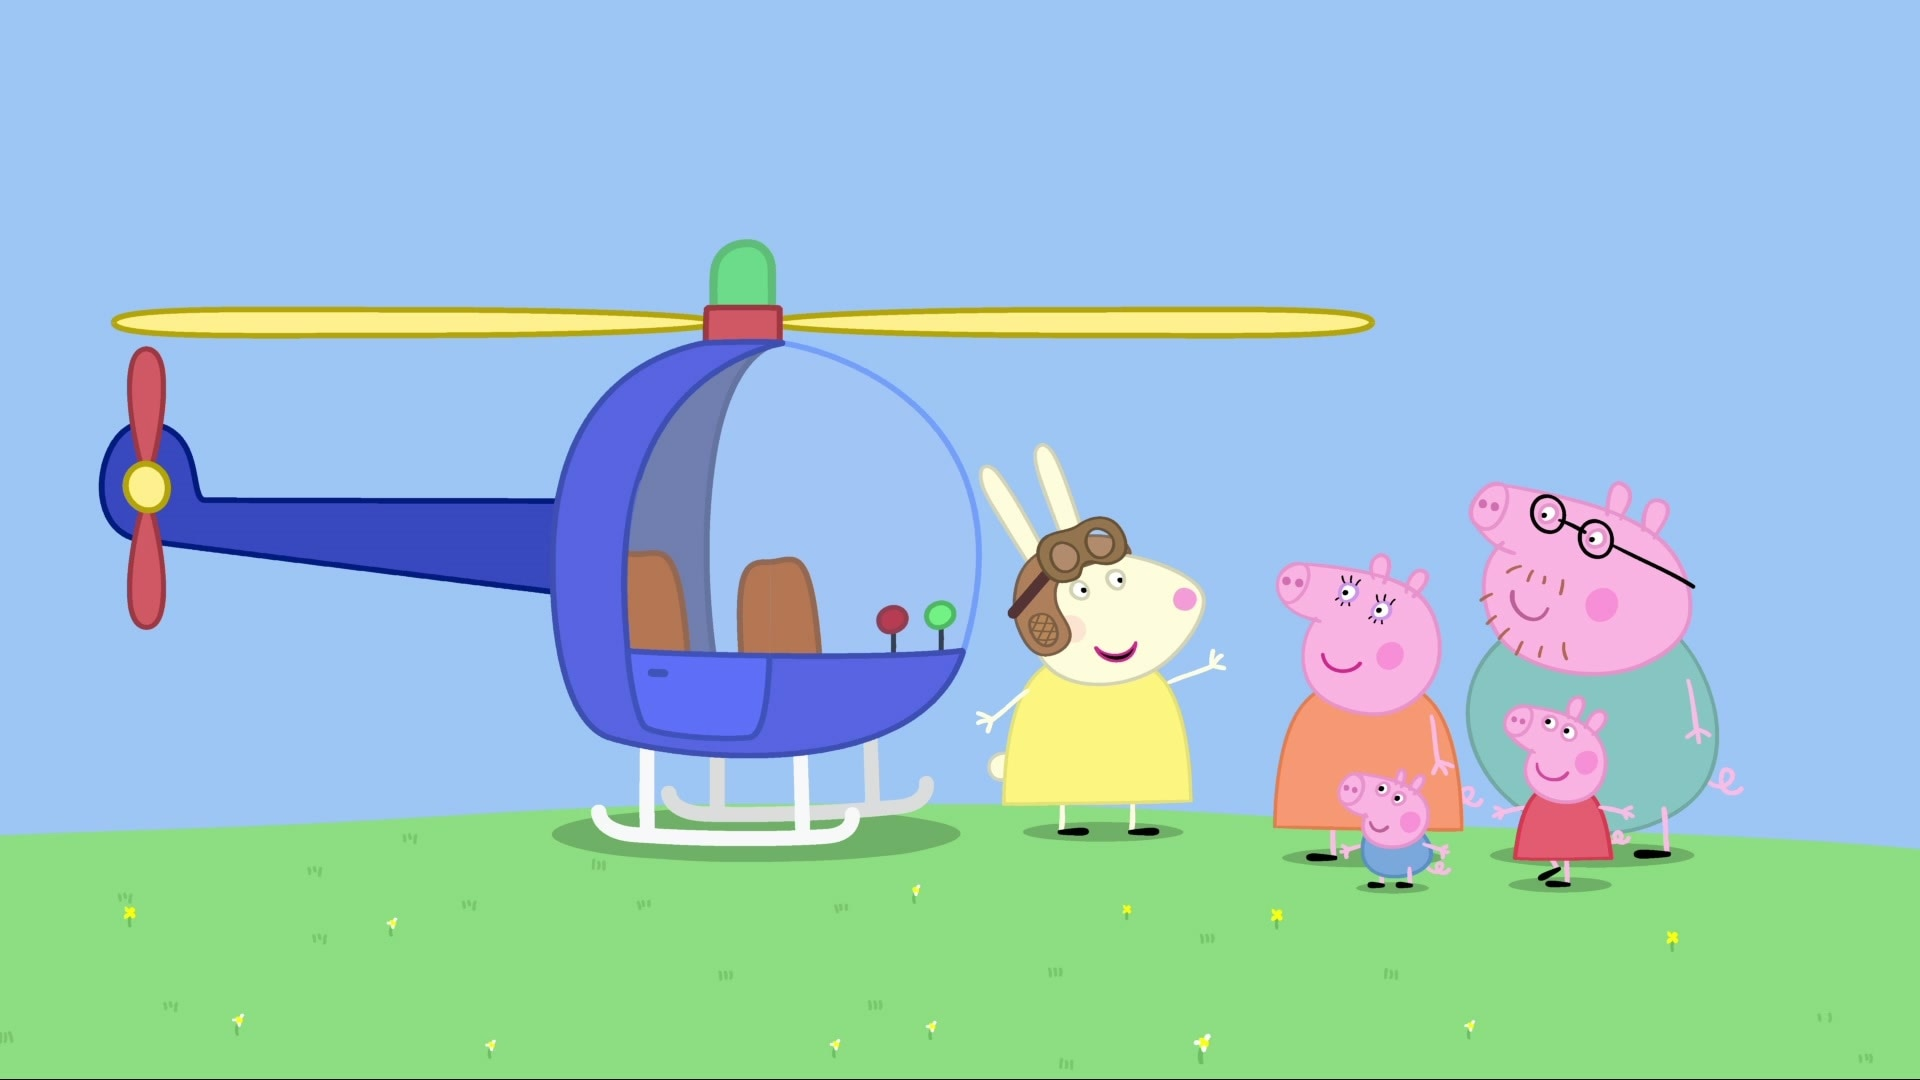 Miss. Rabbit's Helicopter